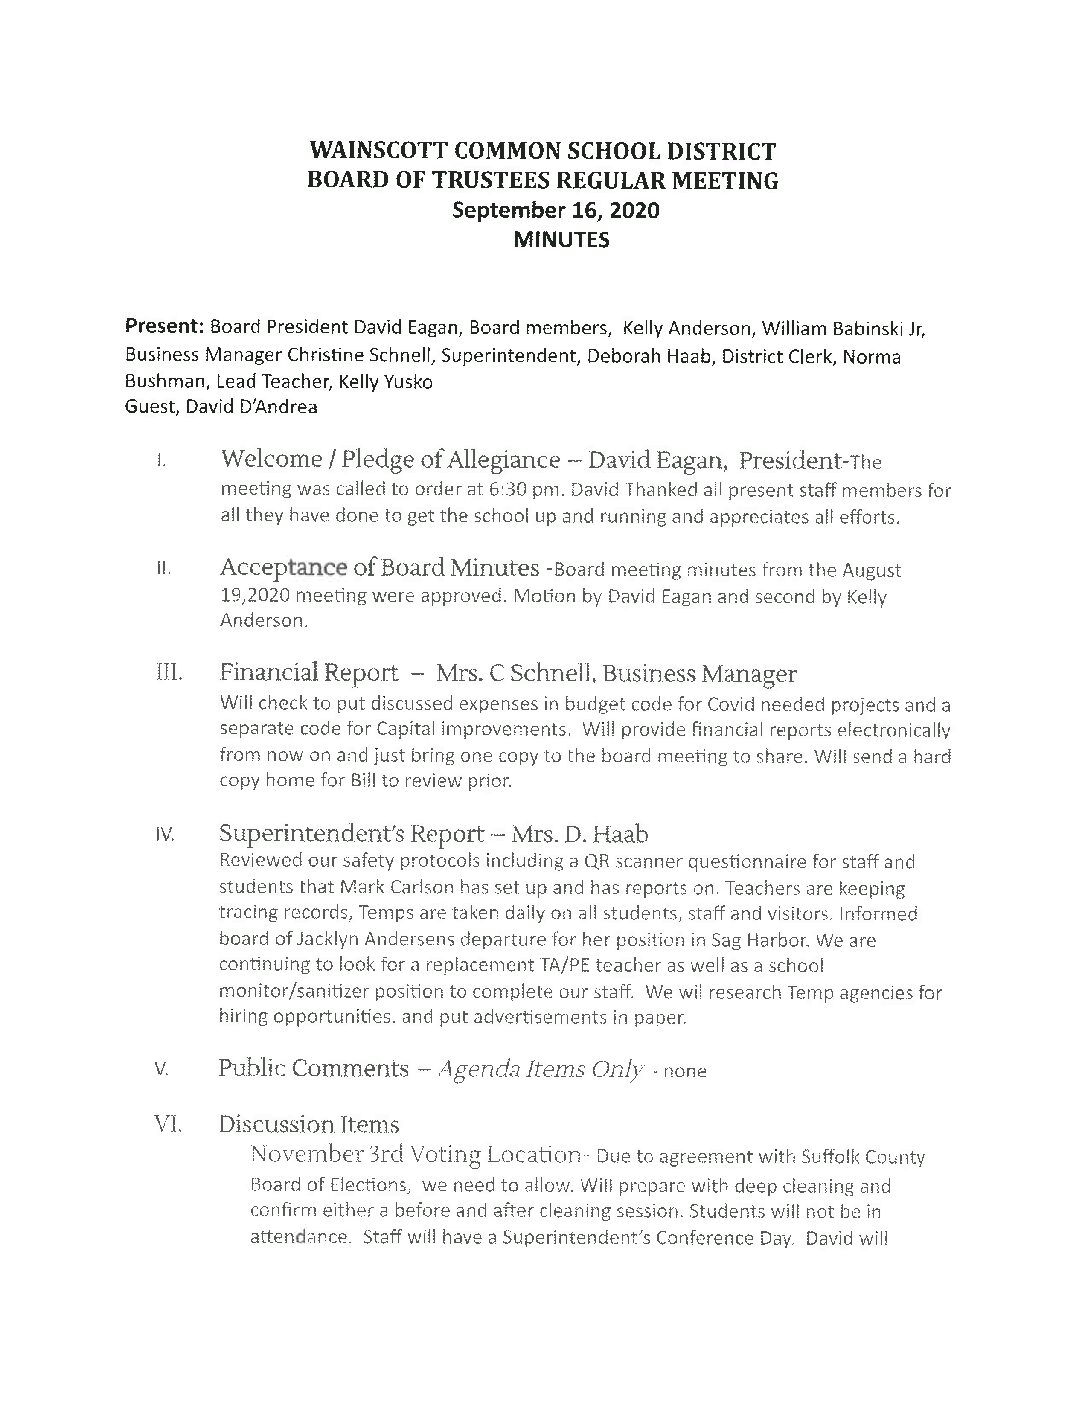 September 16, 2020 Board Meeting Minutes